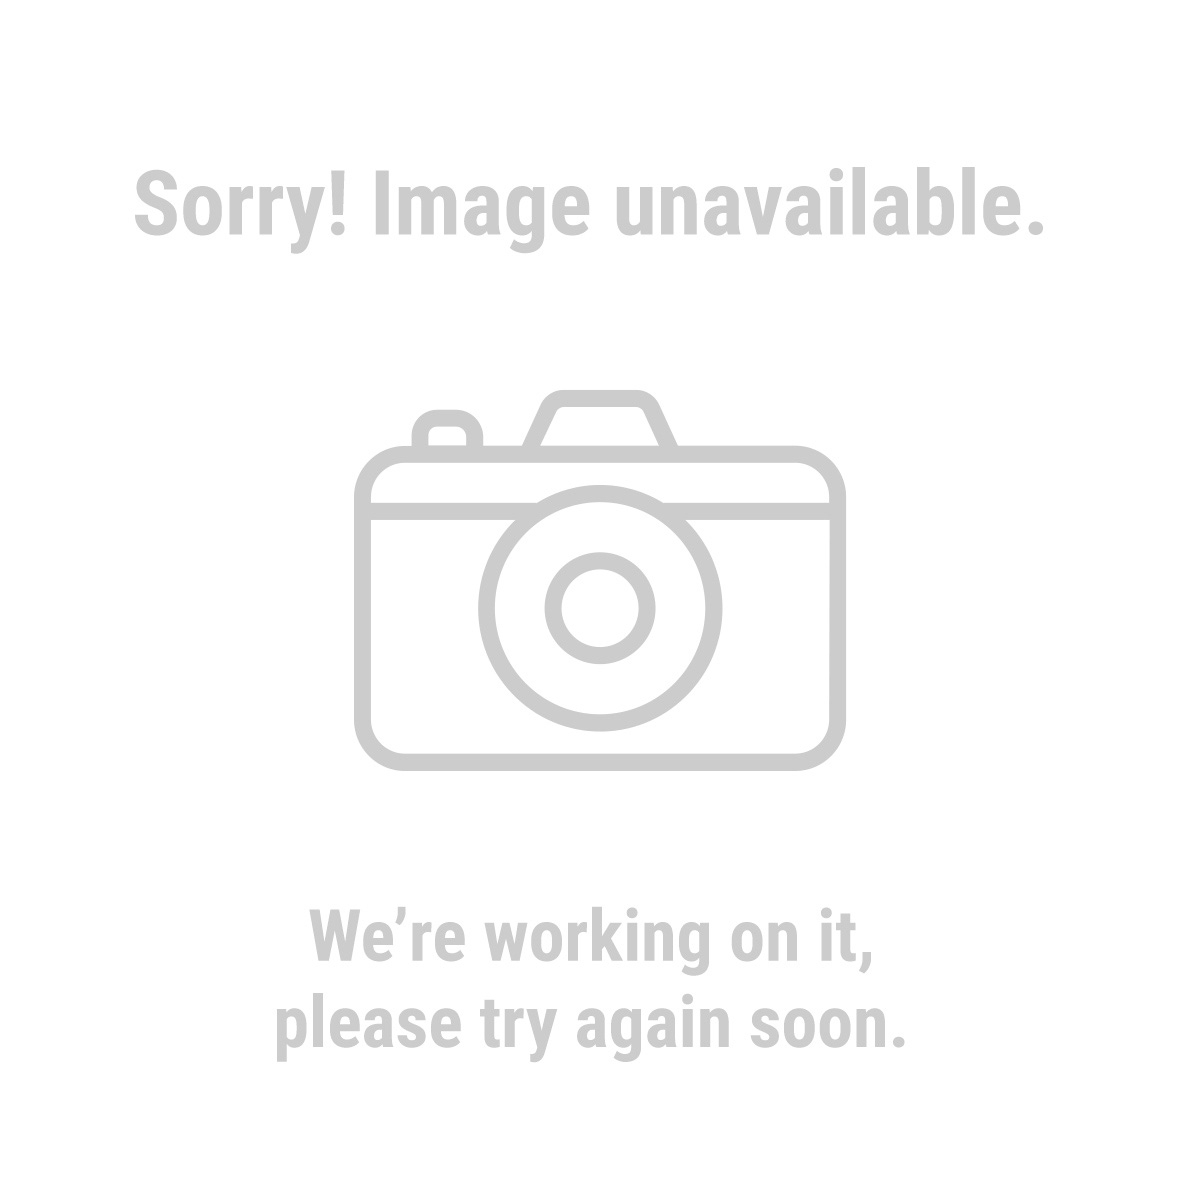 Warrior® 69807 7 Piece 220 Grit Silicon Carbide Sanding Sheets